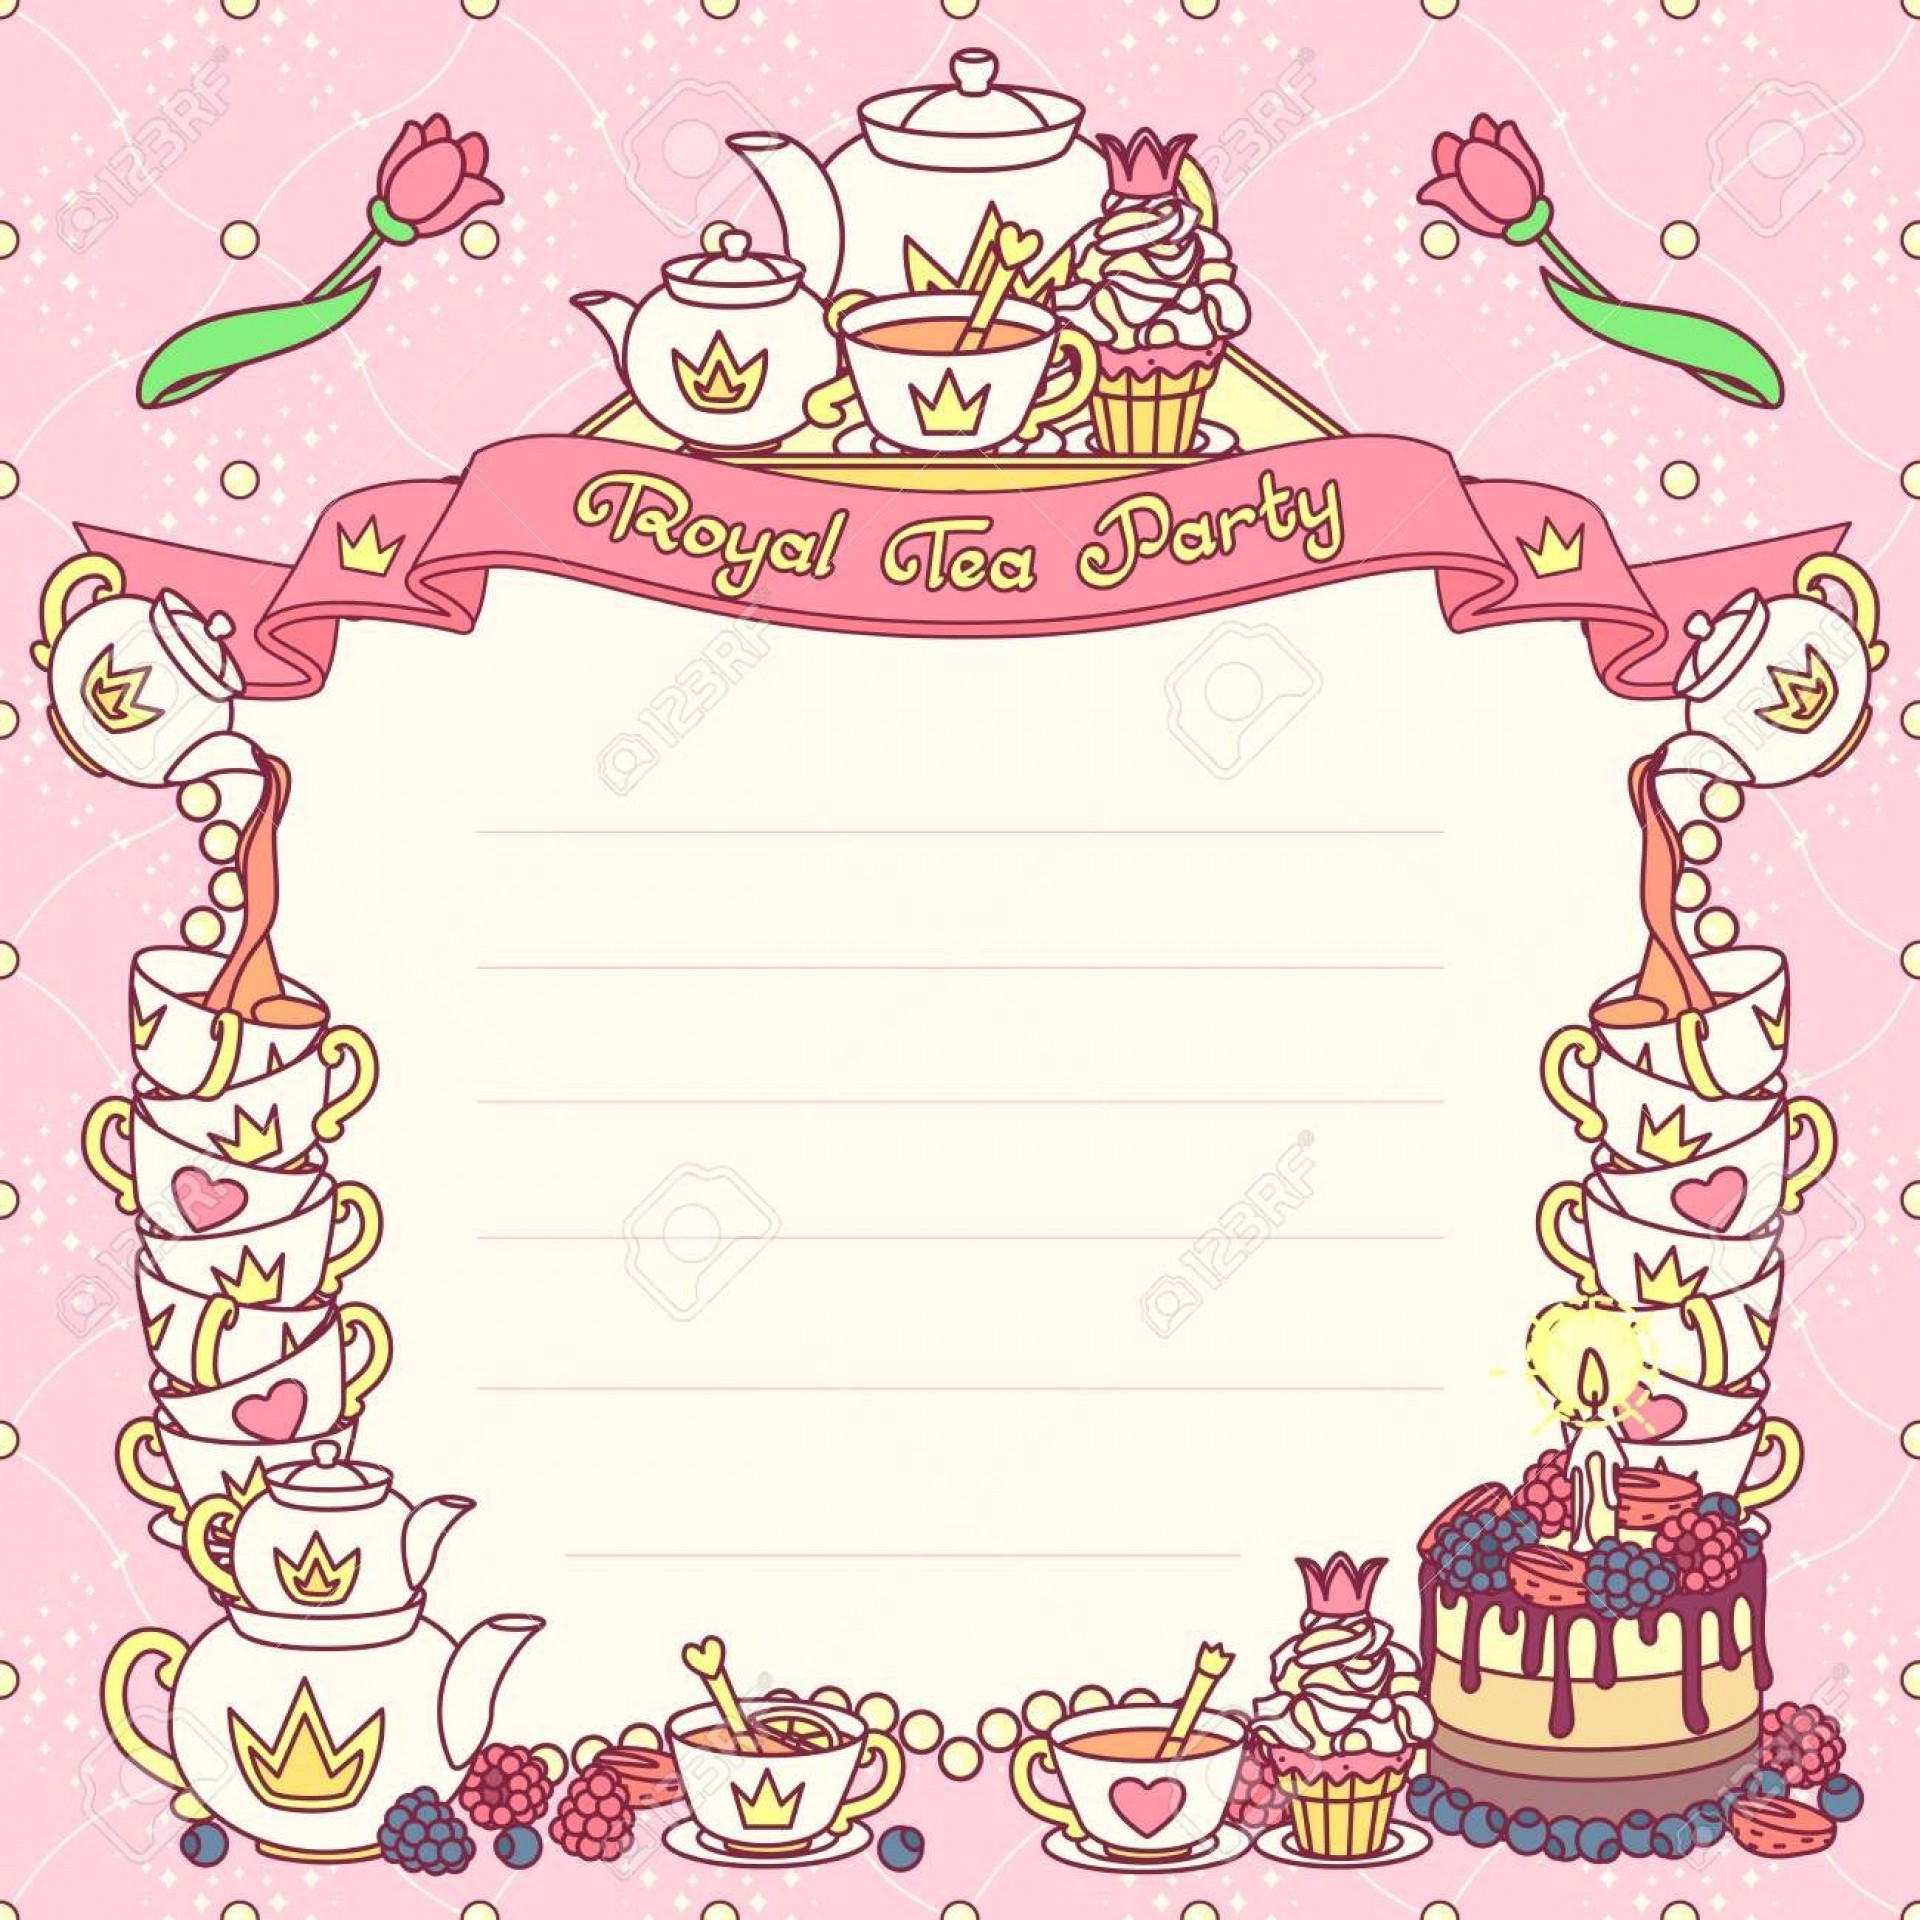 006 Sensational Tea Party Invitation Template Picture  Wording Vintage Free Sample1920